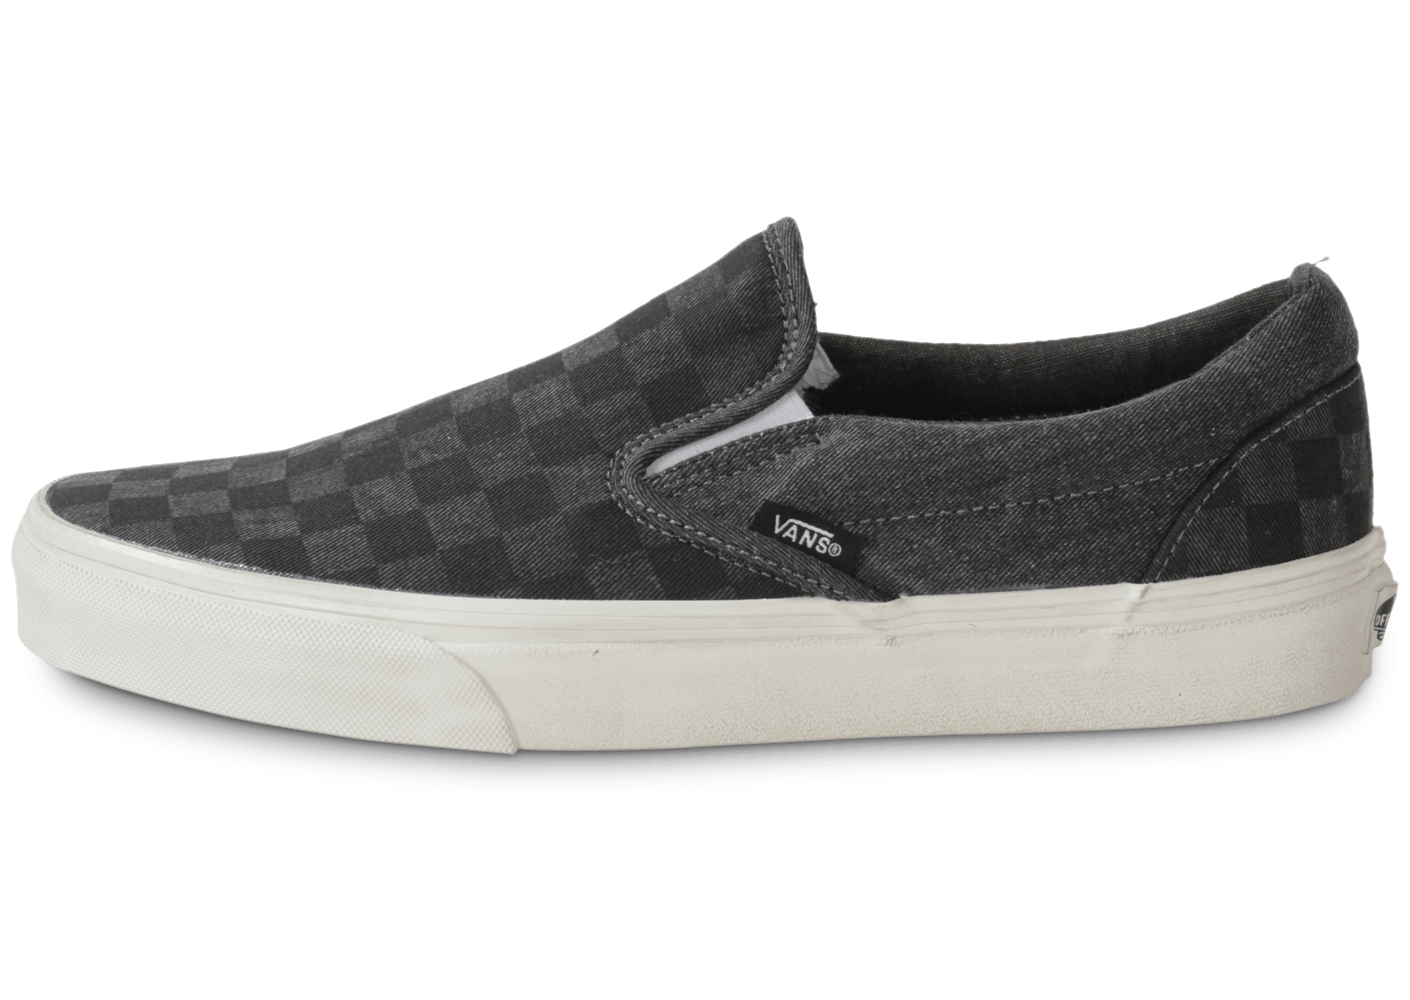 Vans Classic Slip-on Damier Grise - Chaussures Baskets homme ...